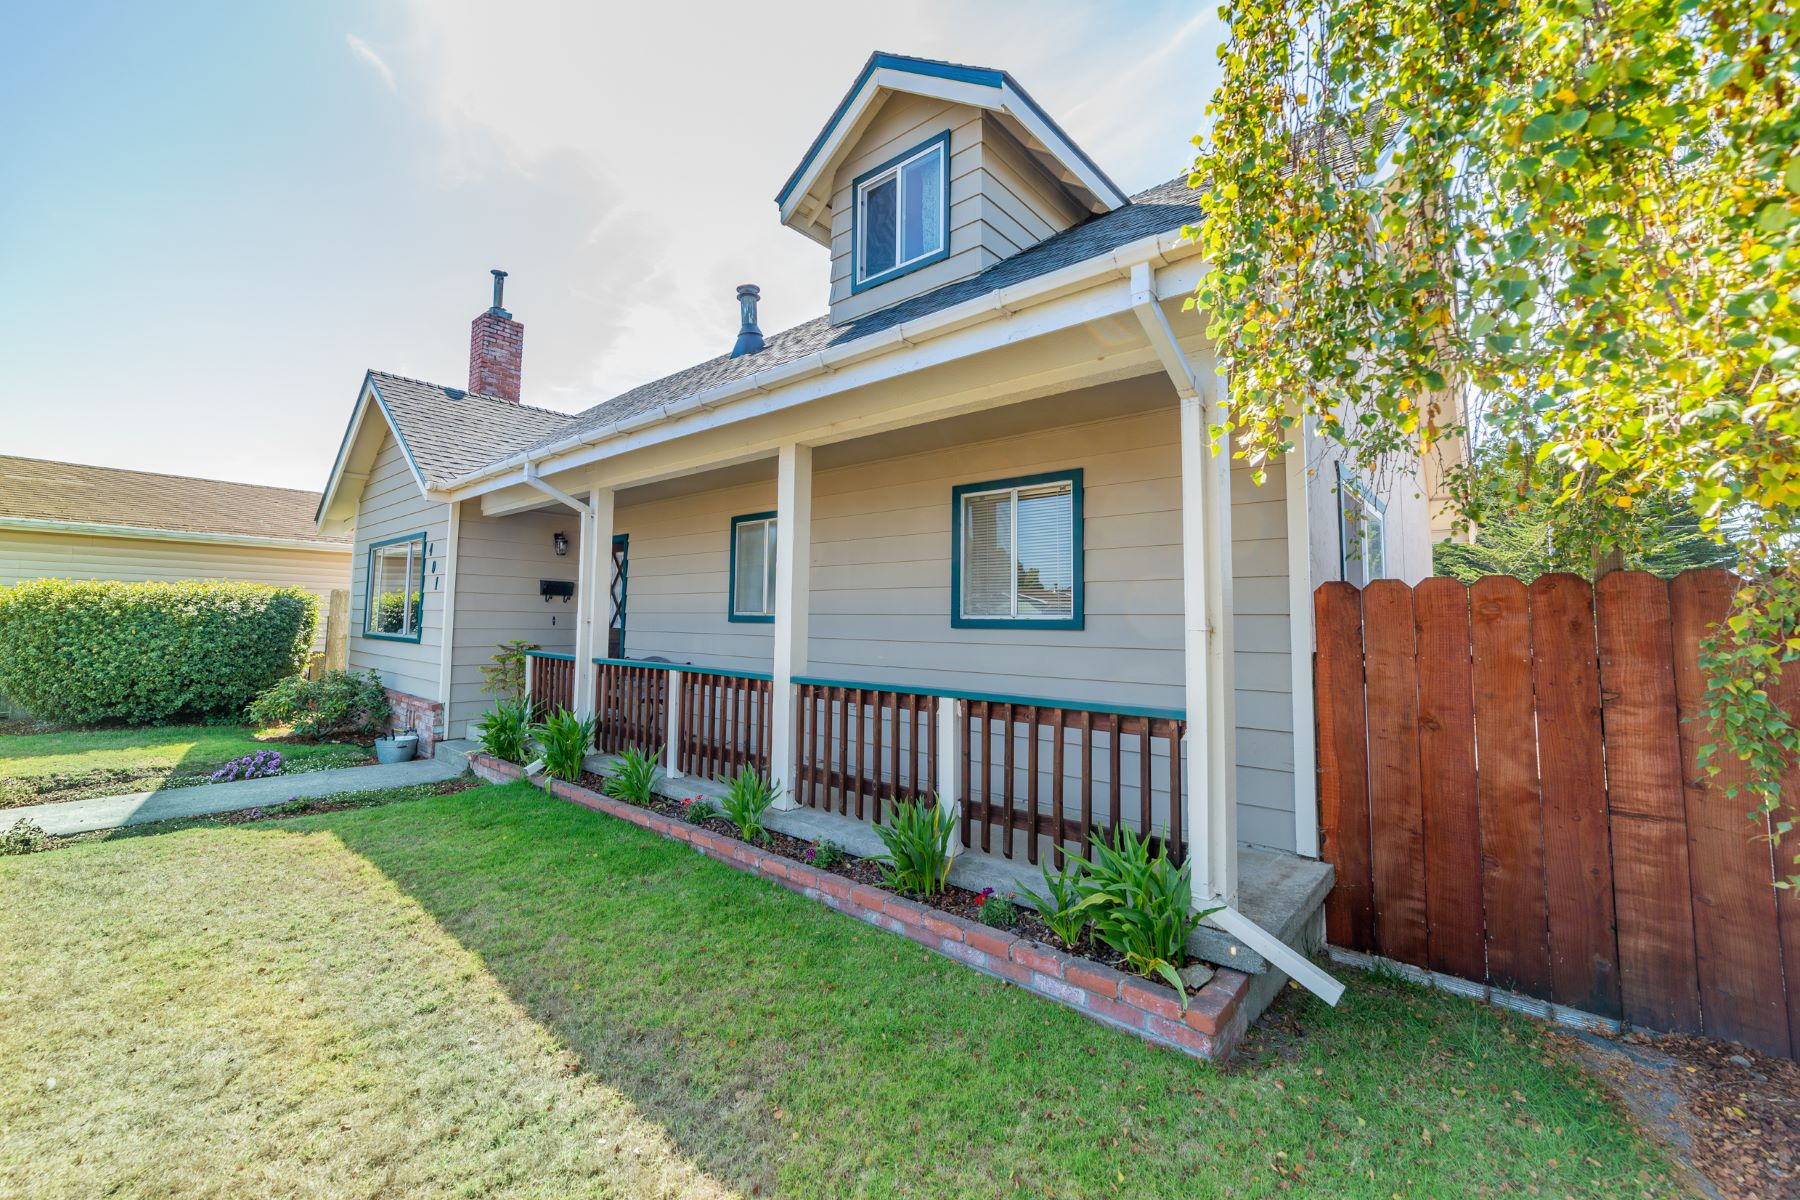 Additional photo for property listing at Stylish City Home 401 Wall Street Fort Bragg, California 95437 United States